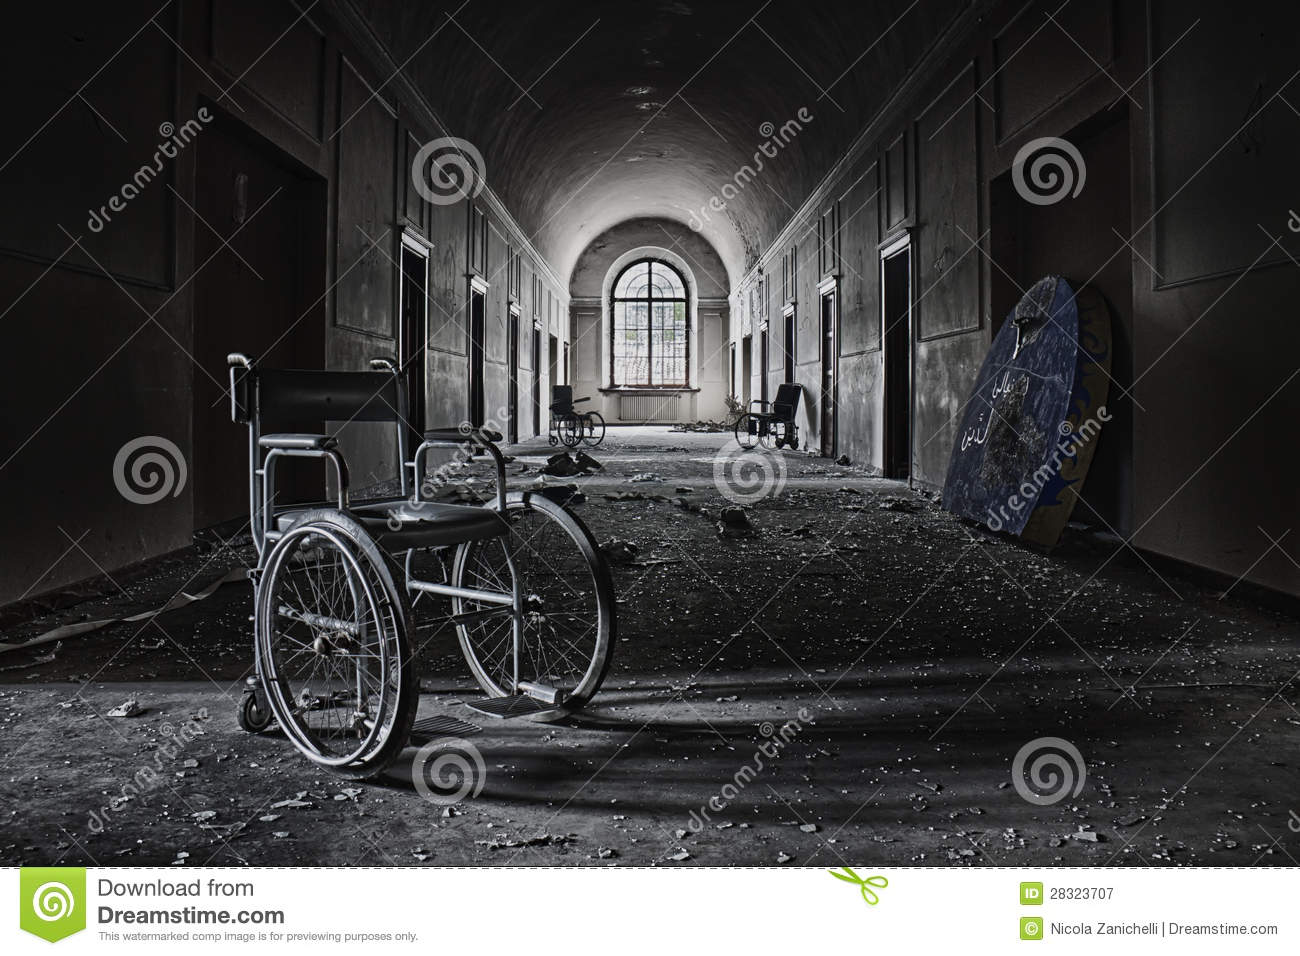 Insane Asylum Royalty Free Stock Photography - Image: 28323707